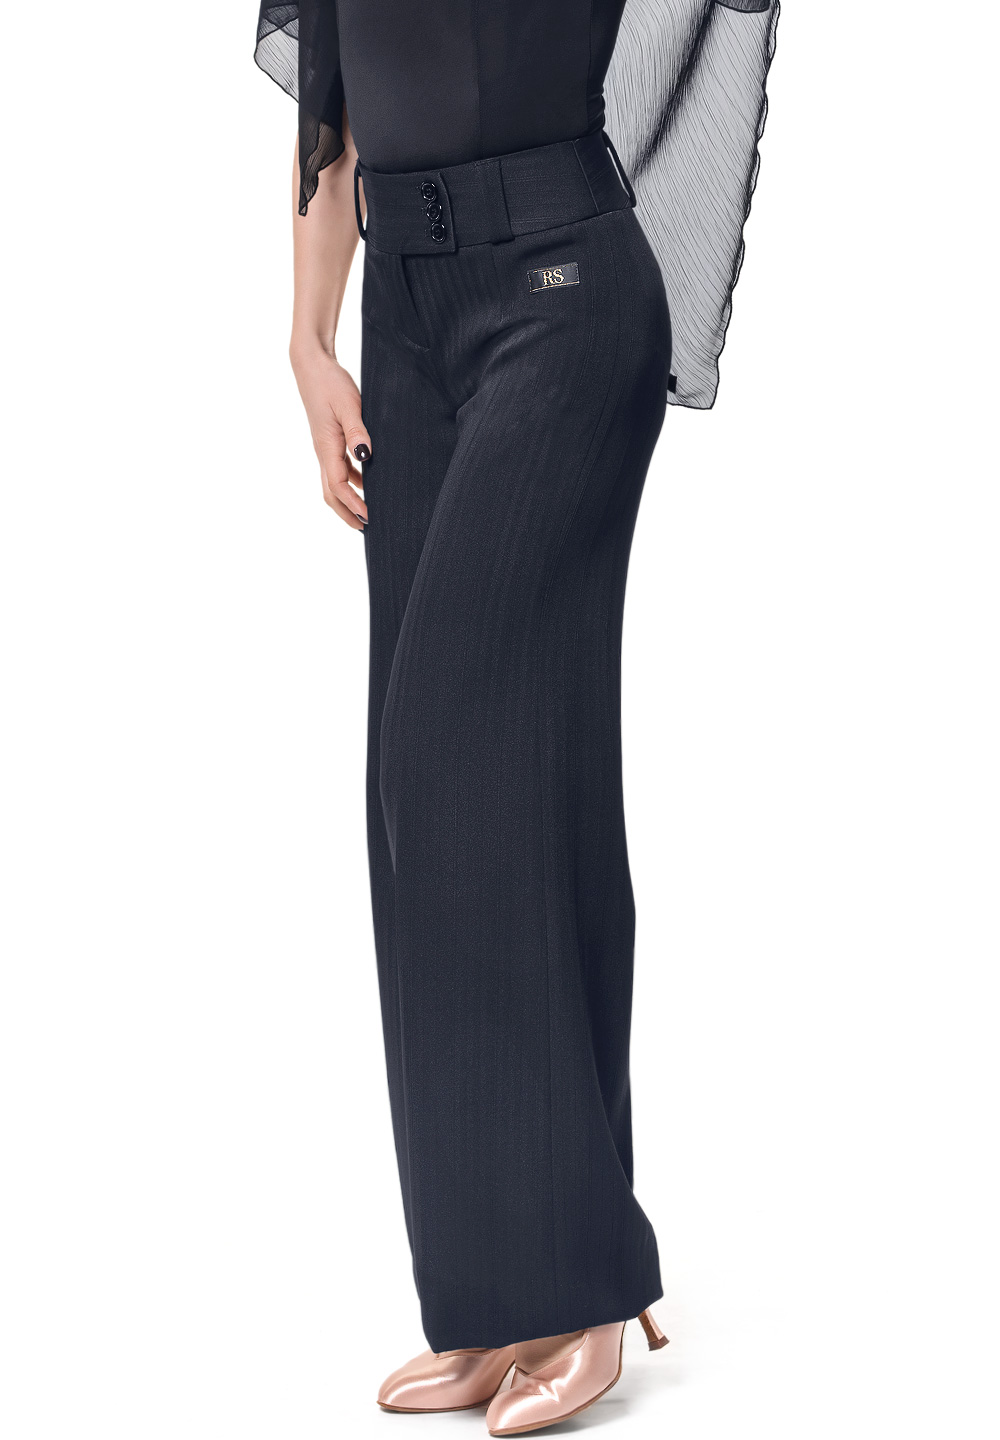 RS Atelier Daria Trendy Trousers